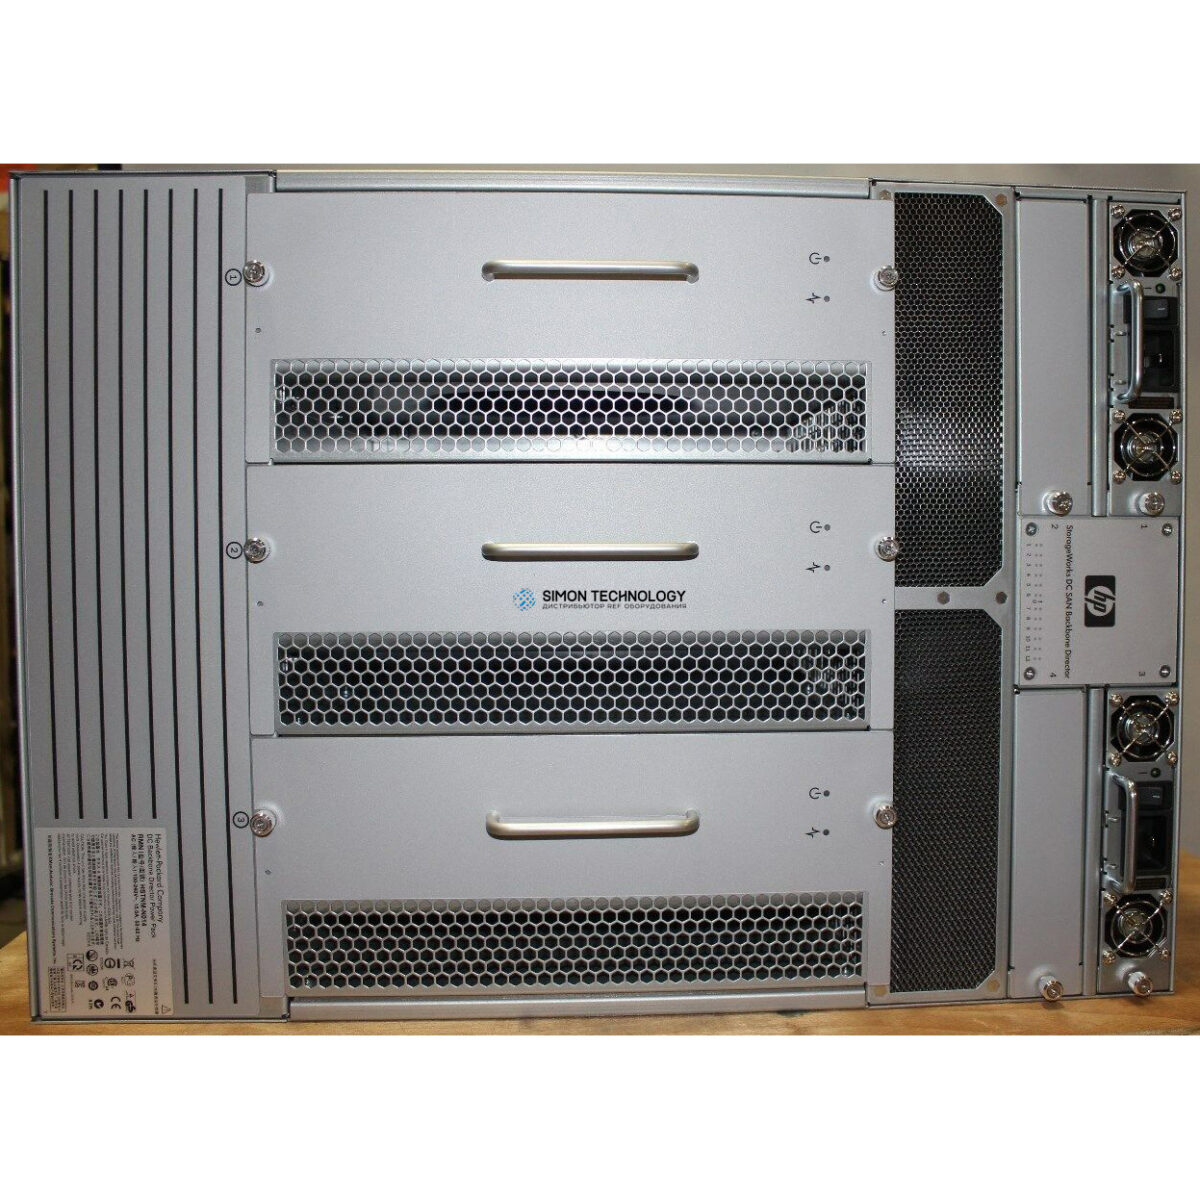 HPE CHASSIS DC BACKBONE DIRECTOR (481545-002)